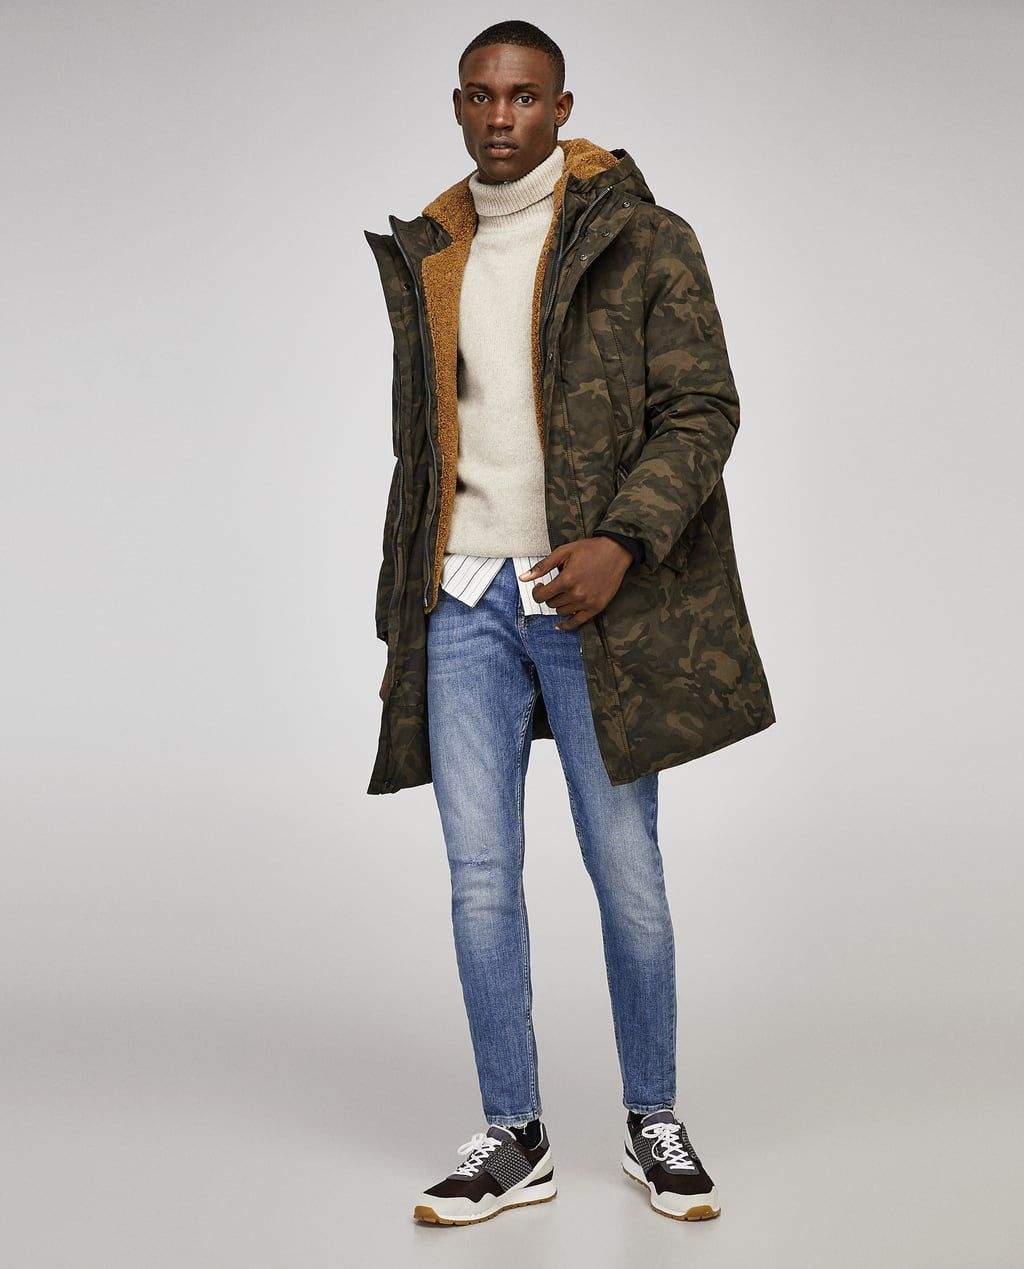 45f2cbae9effd Image 1 of CAMOUFLAGE PARKA from Zara Man Fashion, Parka, Presentation,  Hipster,